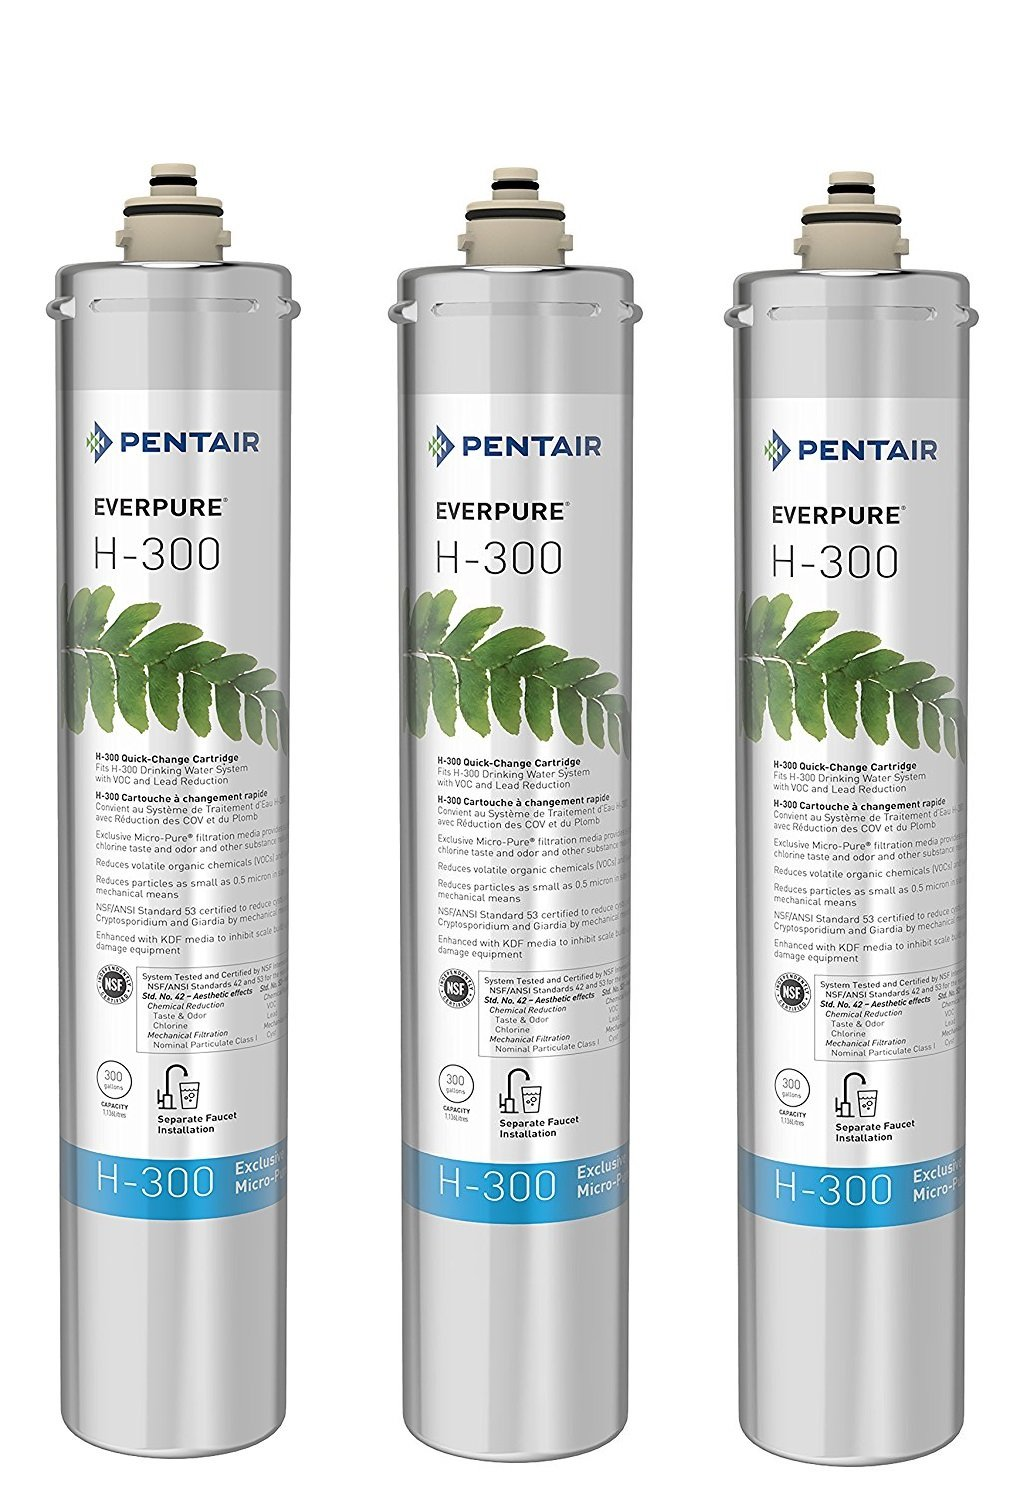 Everpure H-300 Water Filter Replacement Cartridge (EV9270-72 or EV9270-71) (Pack of 3)